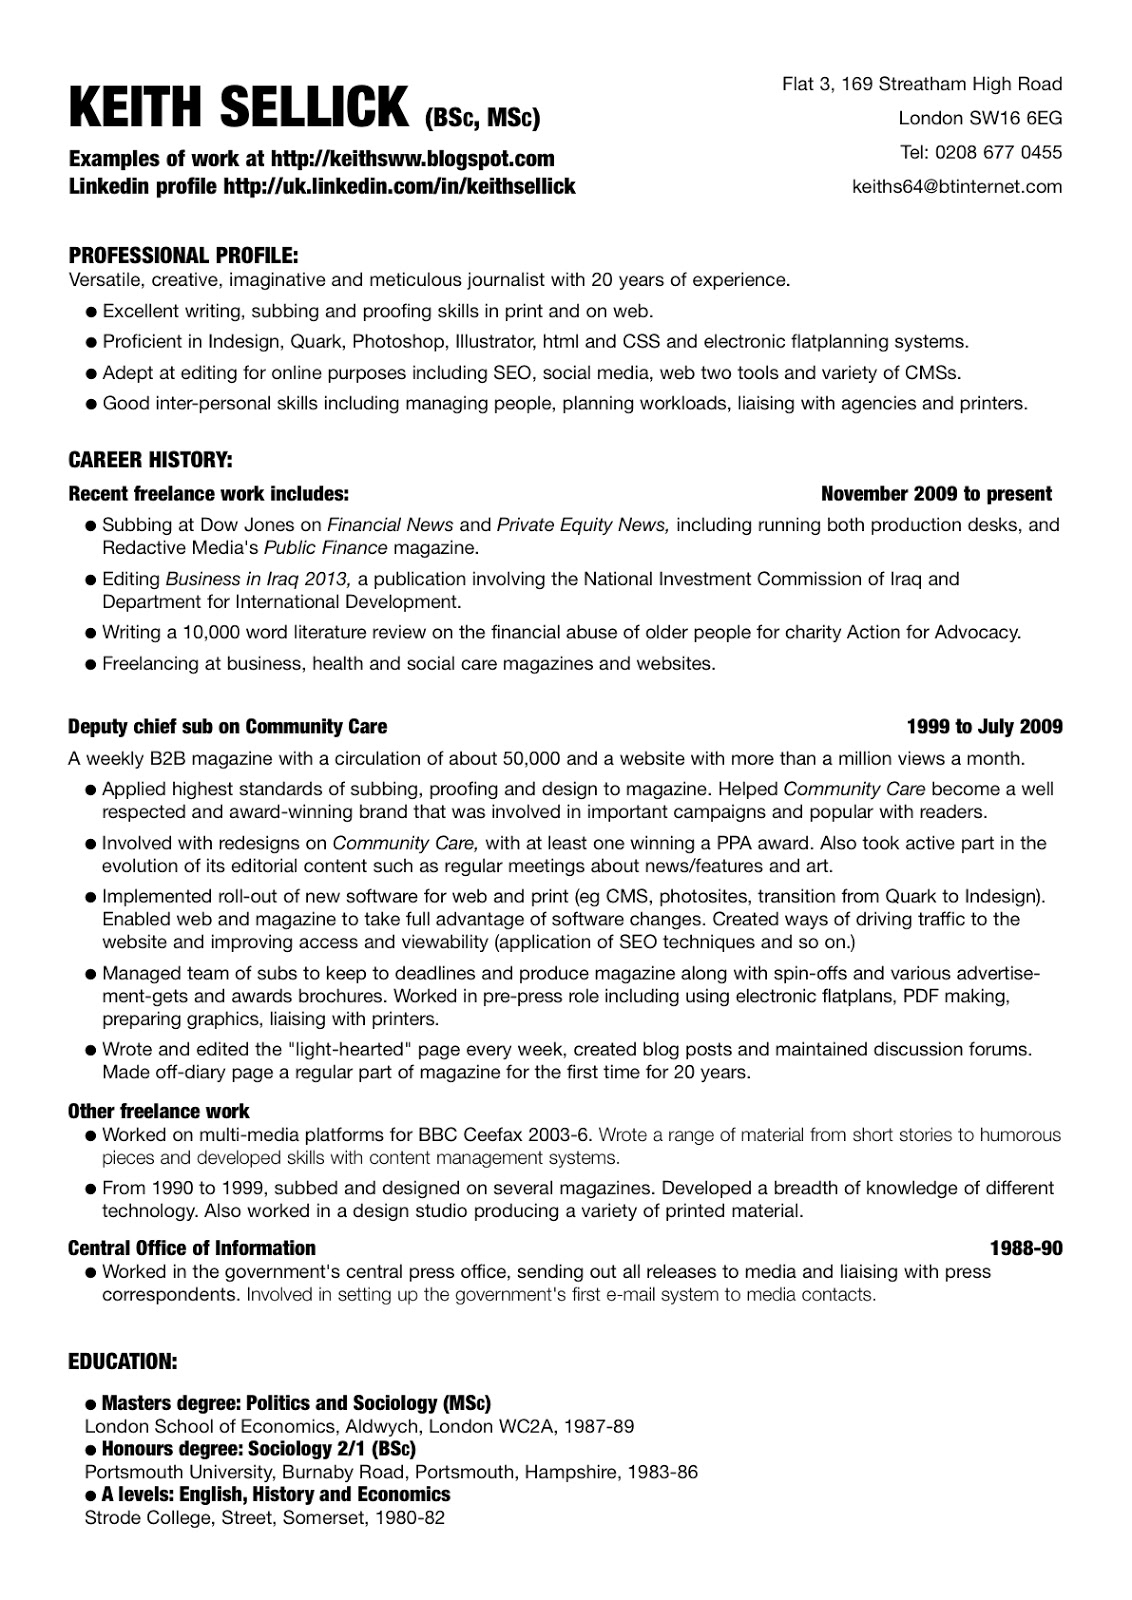 Me Resume Vizualizeme Review Your As An Infographic Build